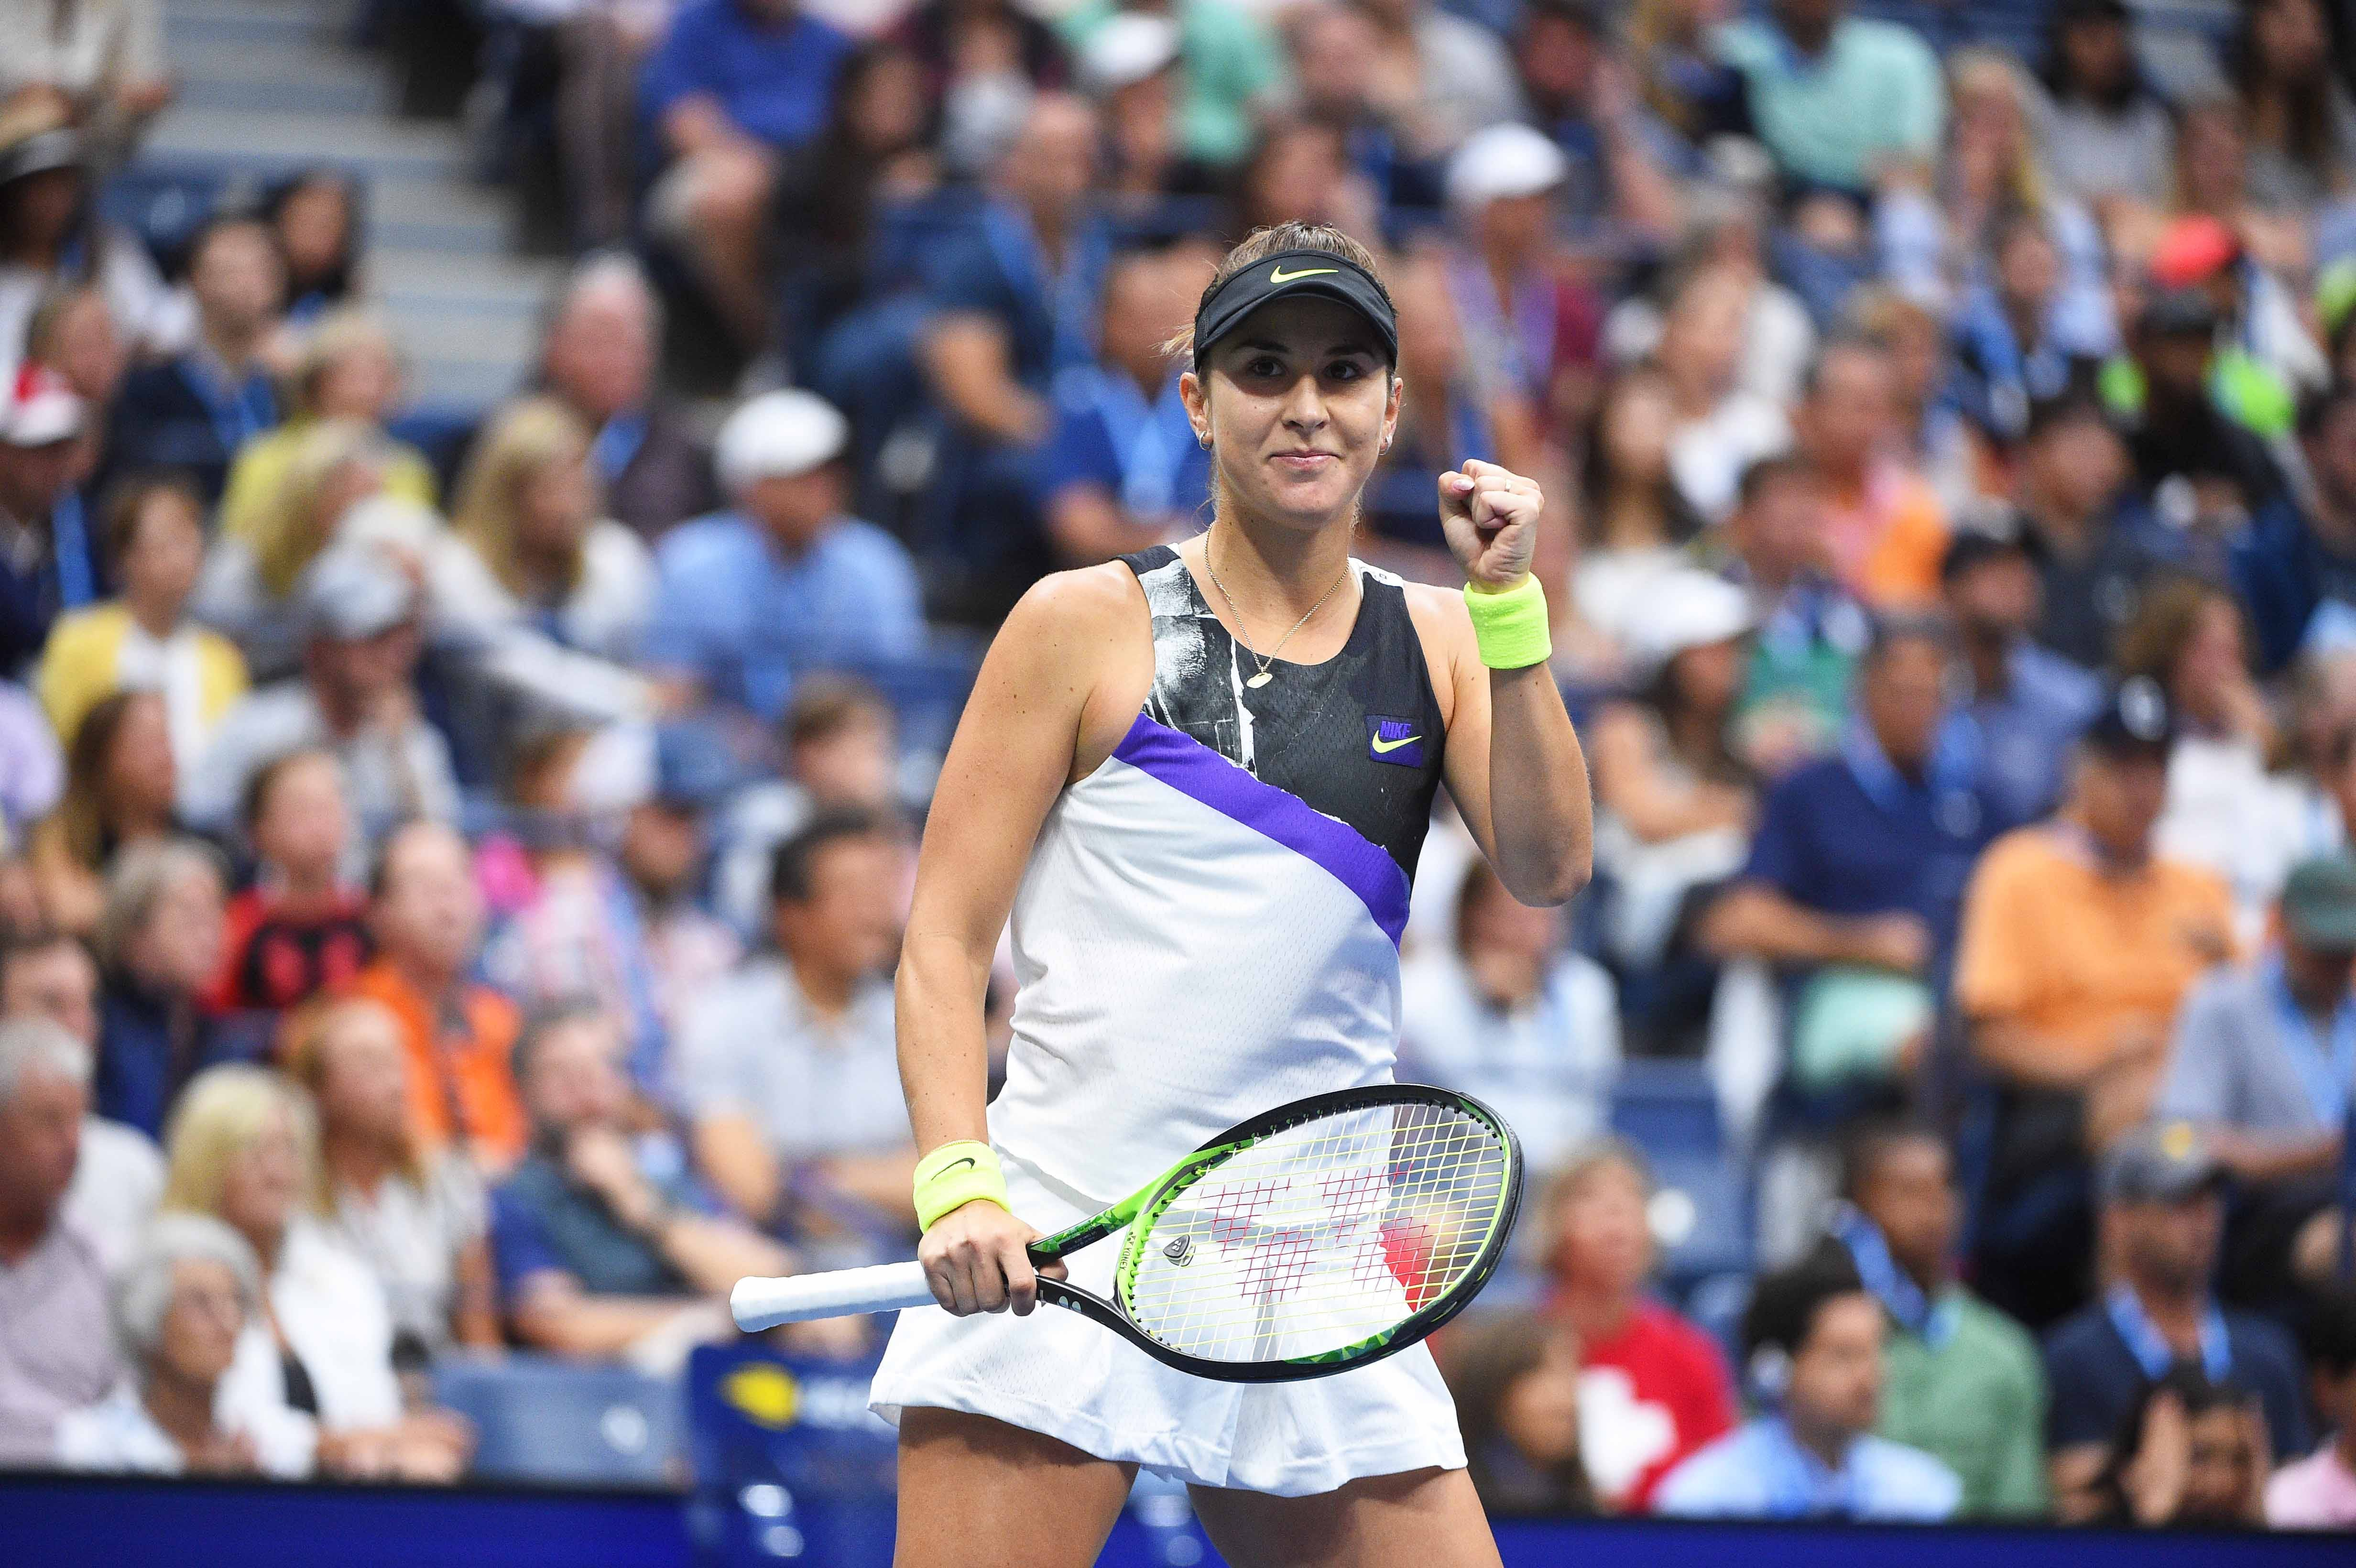 Belinda Bencic fist pumping after her fourth round match at the 2019 US Open